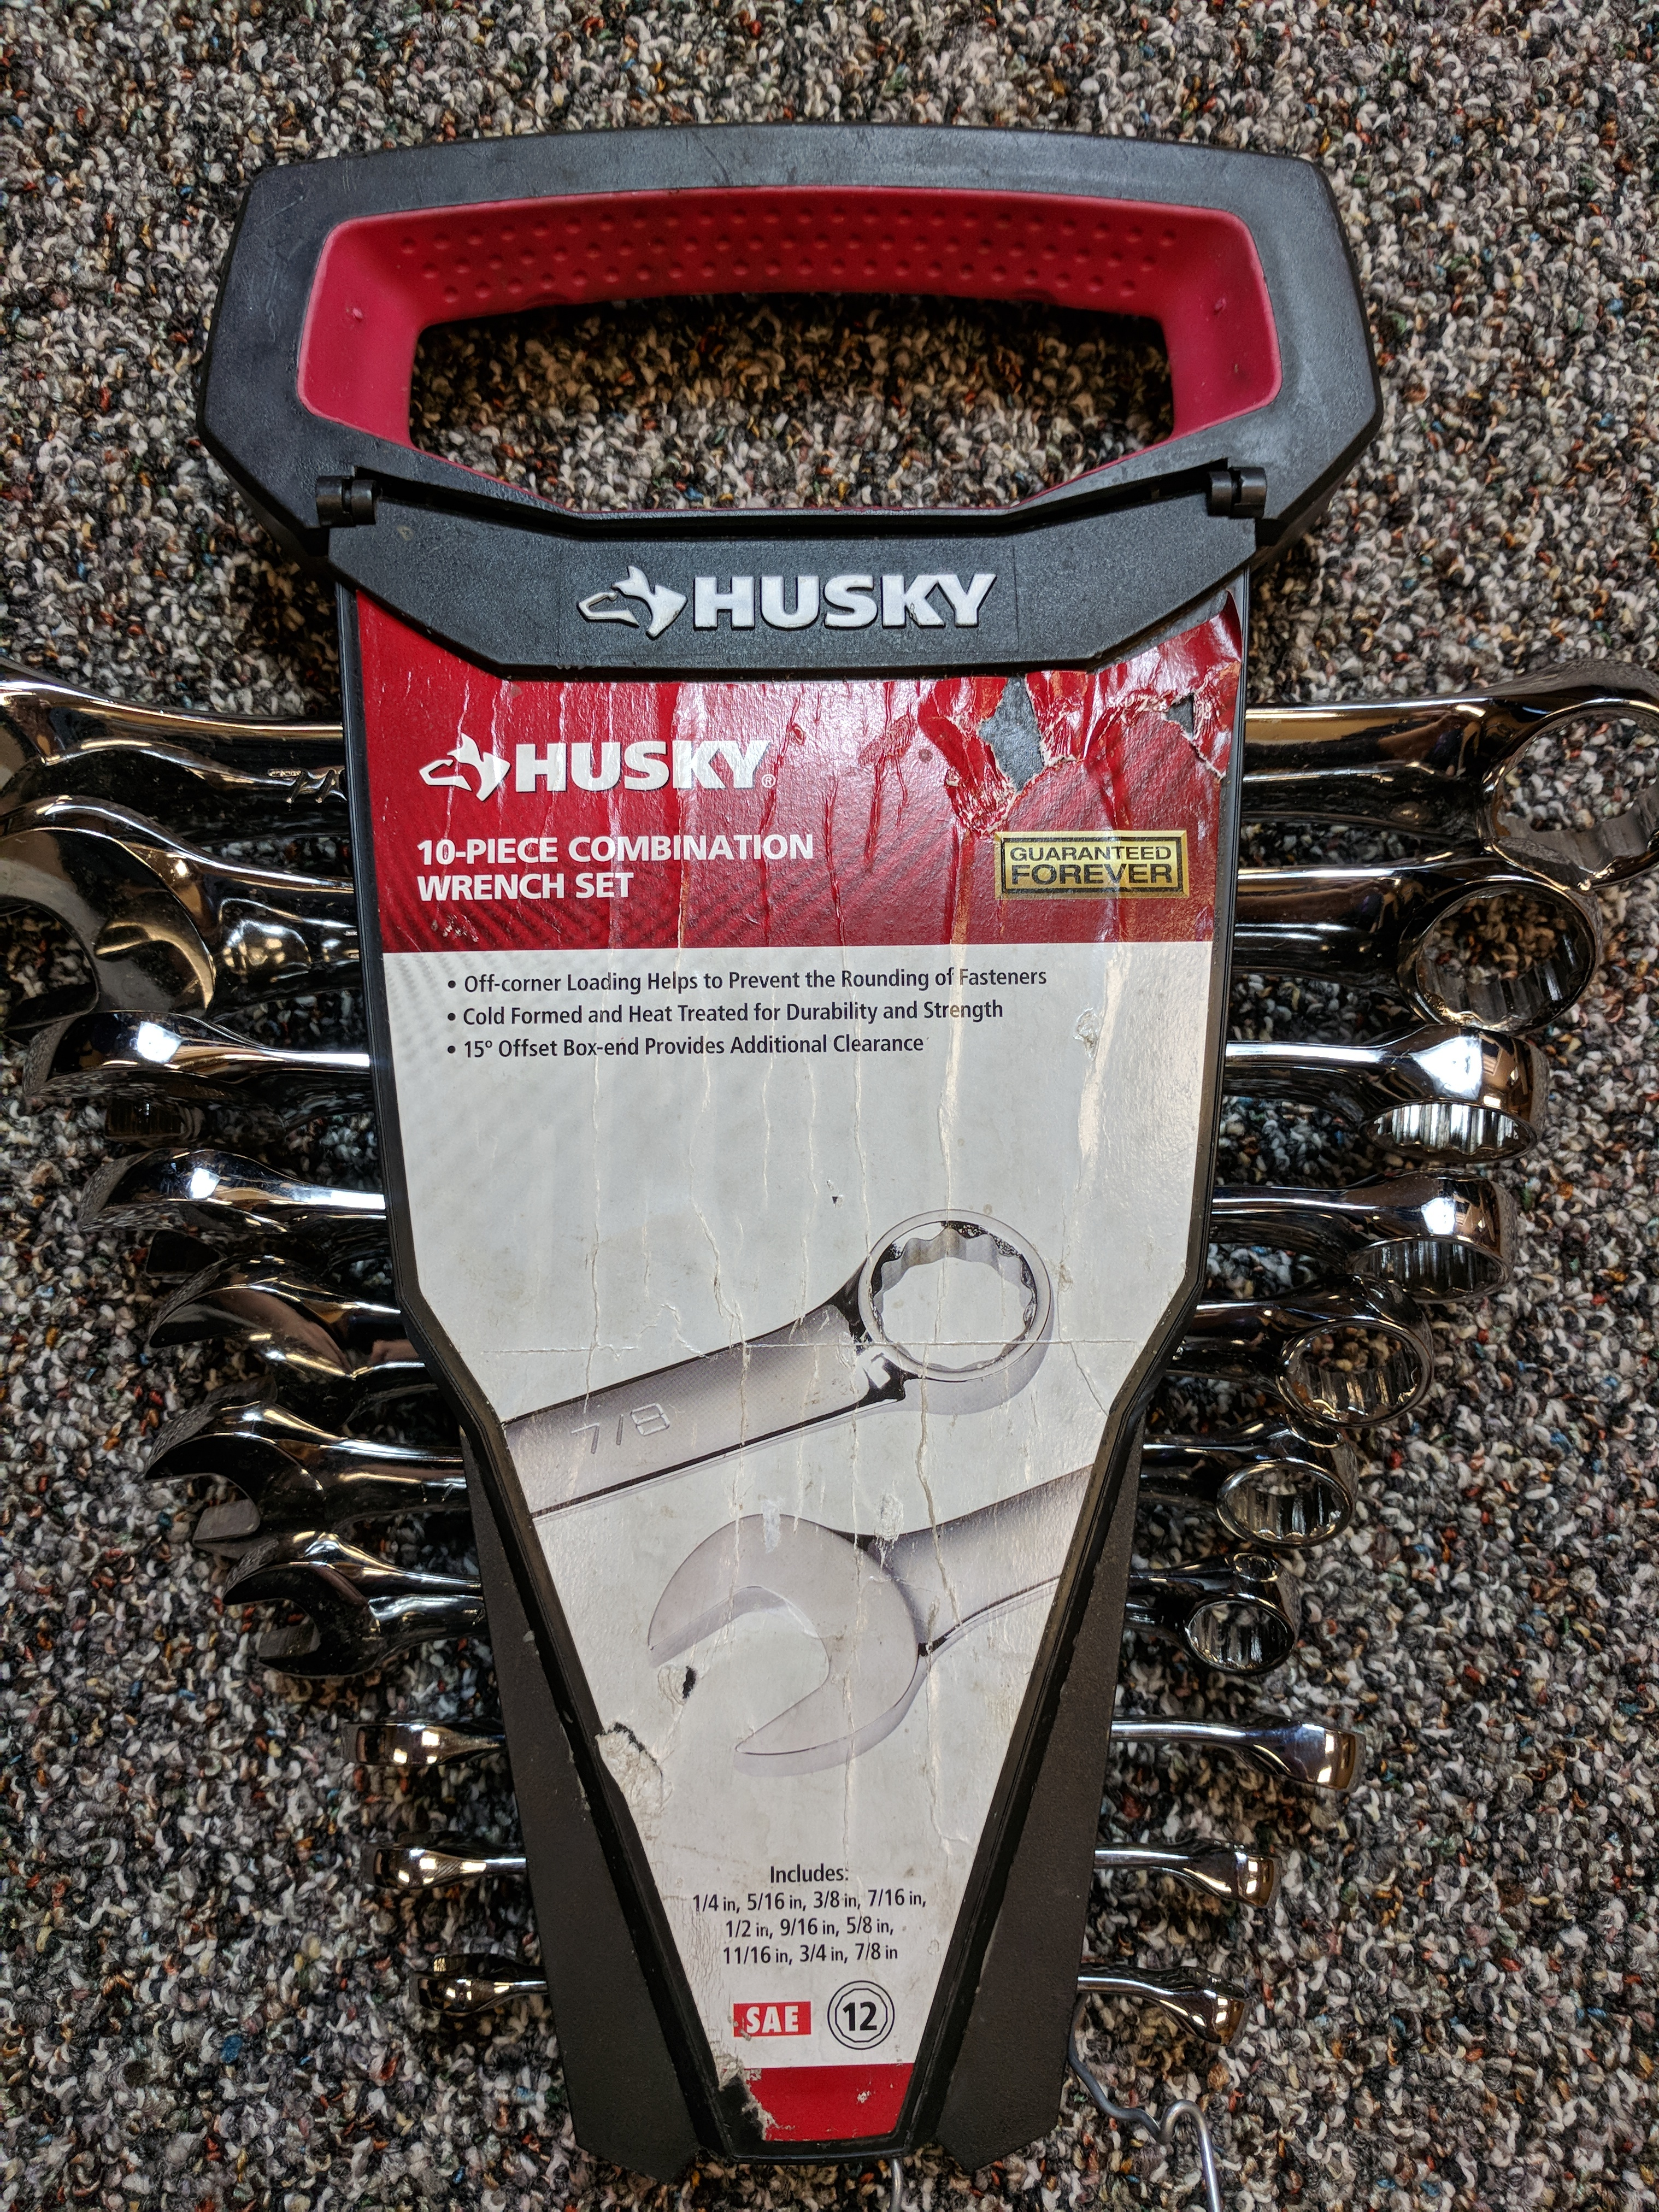 HUSKY 10-PIECE COMBINATION WRENCH SET